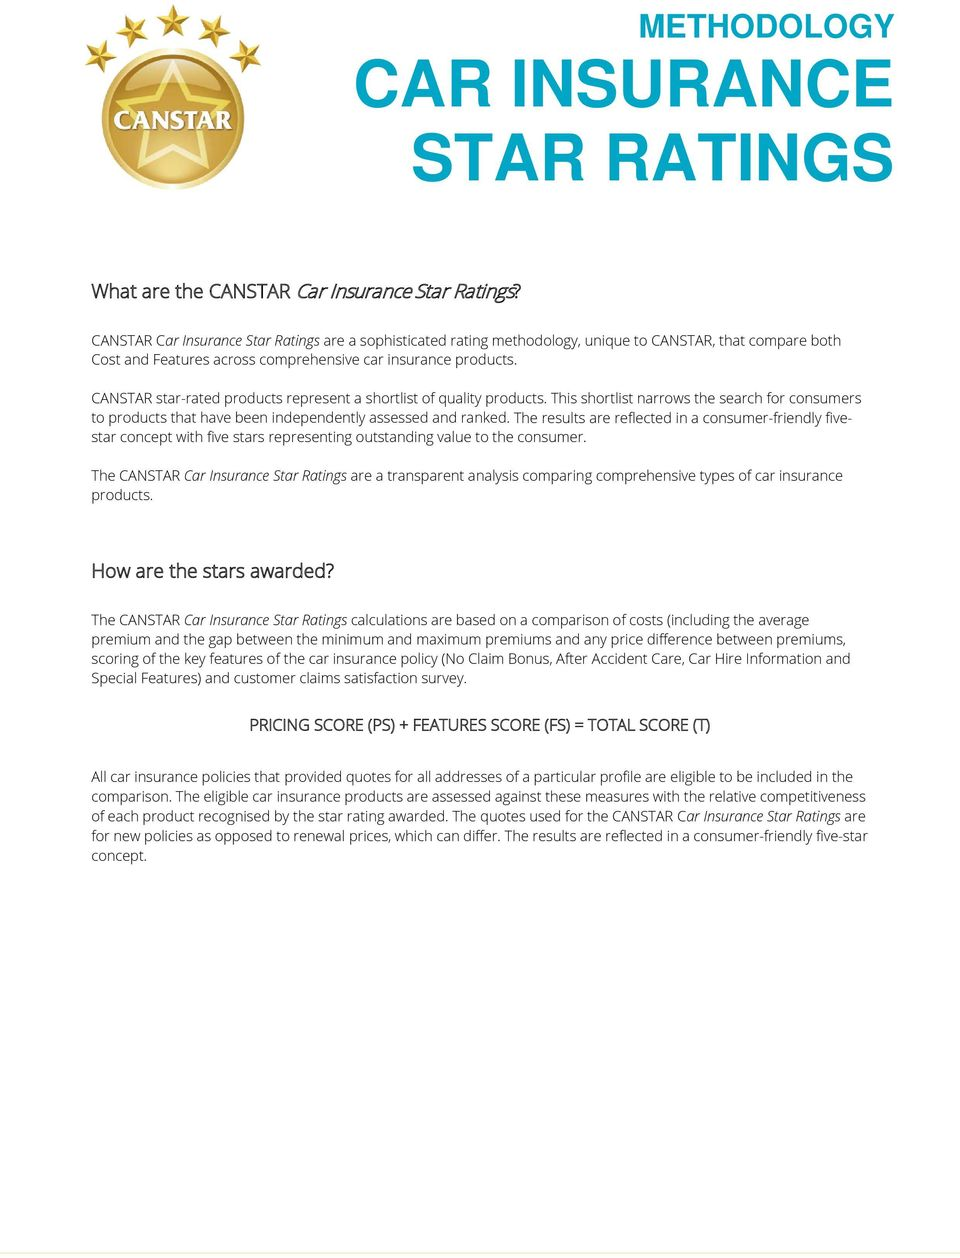 CANSTAR star-rated products represent a shortlist of quality products. This shortlist narrows the search for consumers to products that have been independently assessed and ranked.